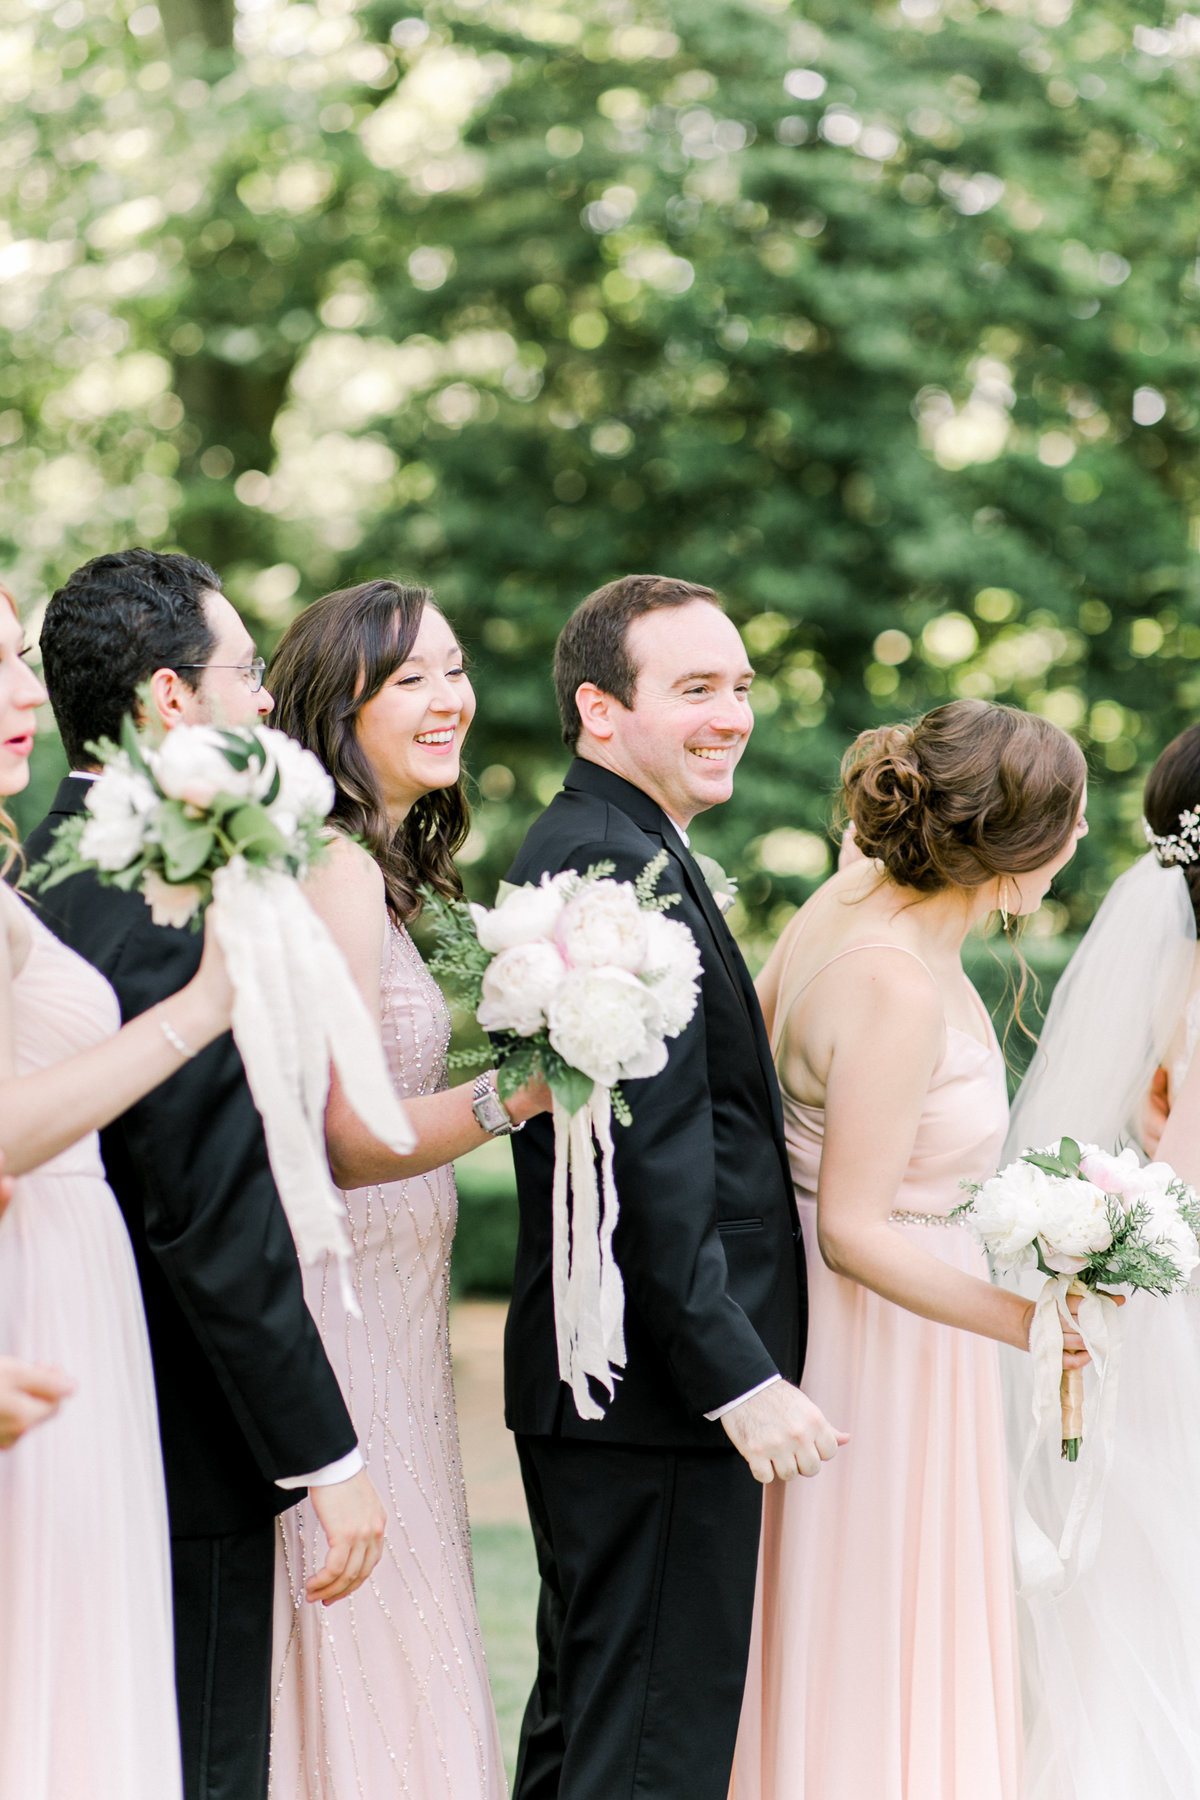 Kate & Jack_Wedding_Bridal Party_1019